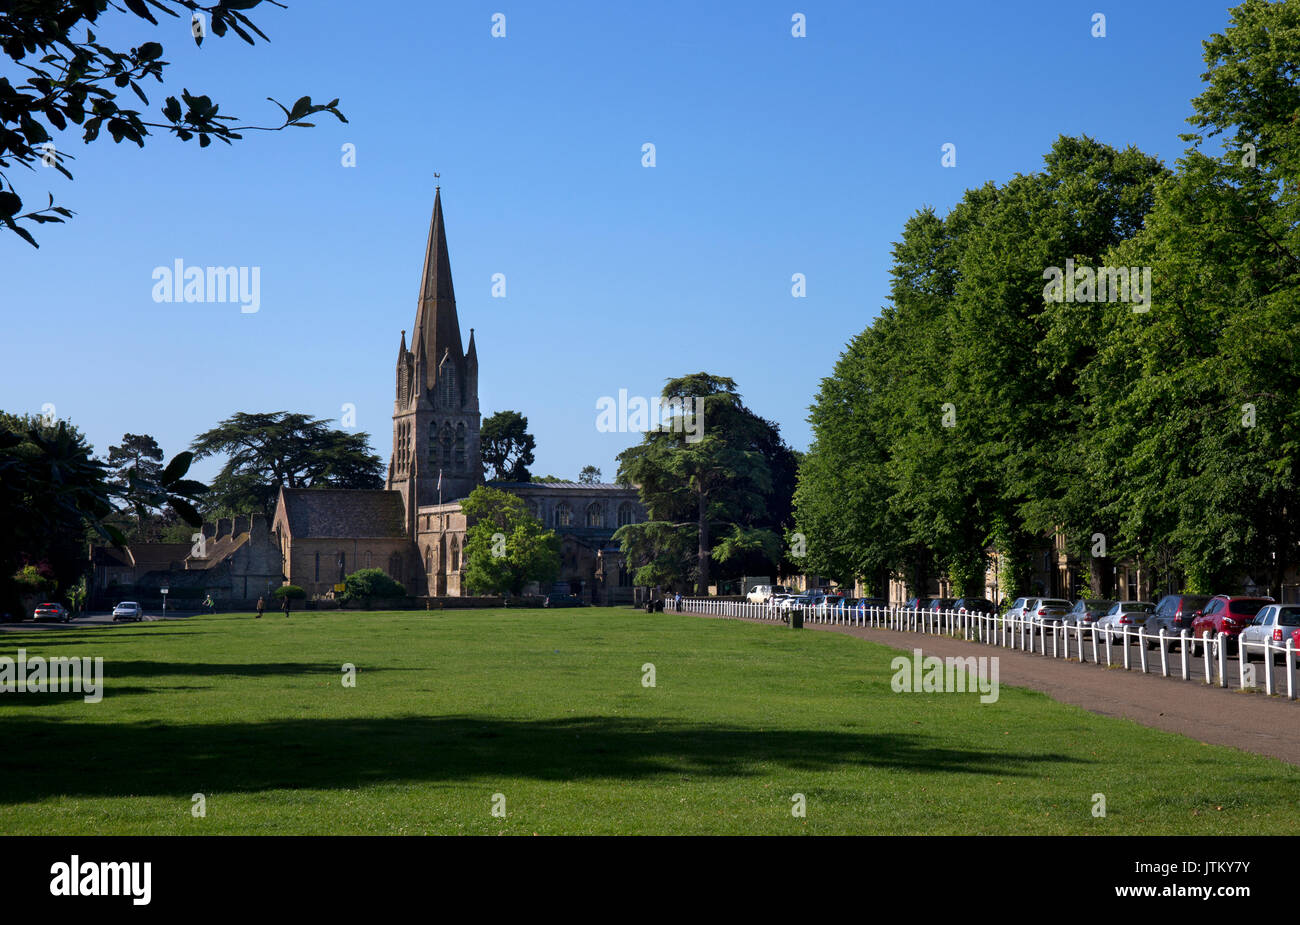 St Mary the Virgin parish church on Wood green,Witney,Oxfordshire,England - Stock Image